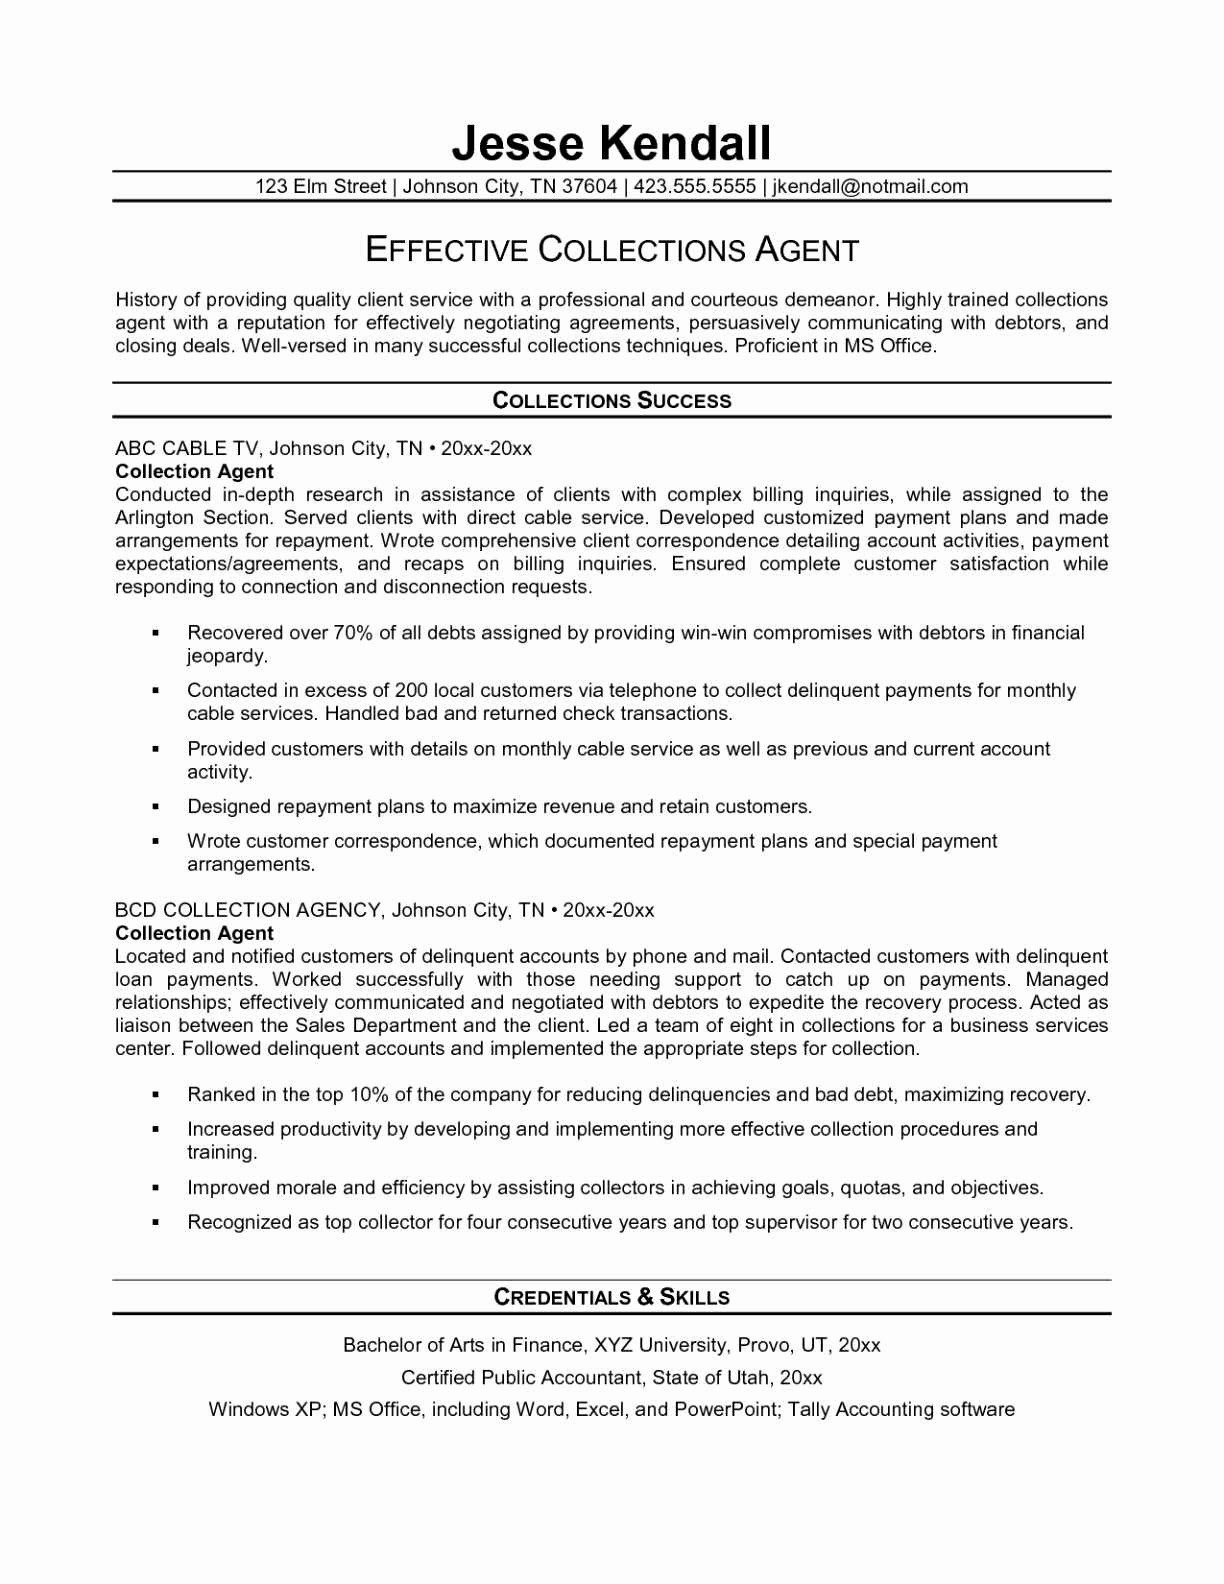 Collection Specialist Resume - Collection Specialist Refrence 11 Present Credit and Collection